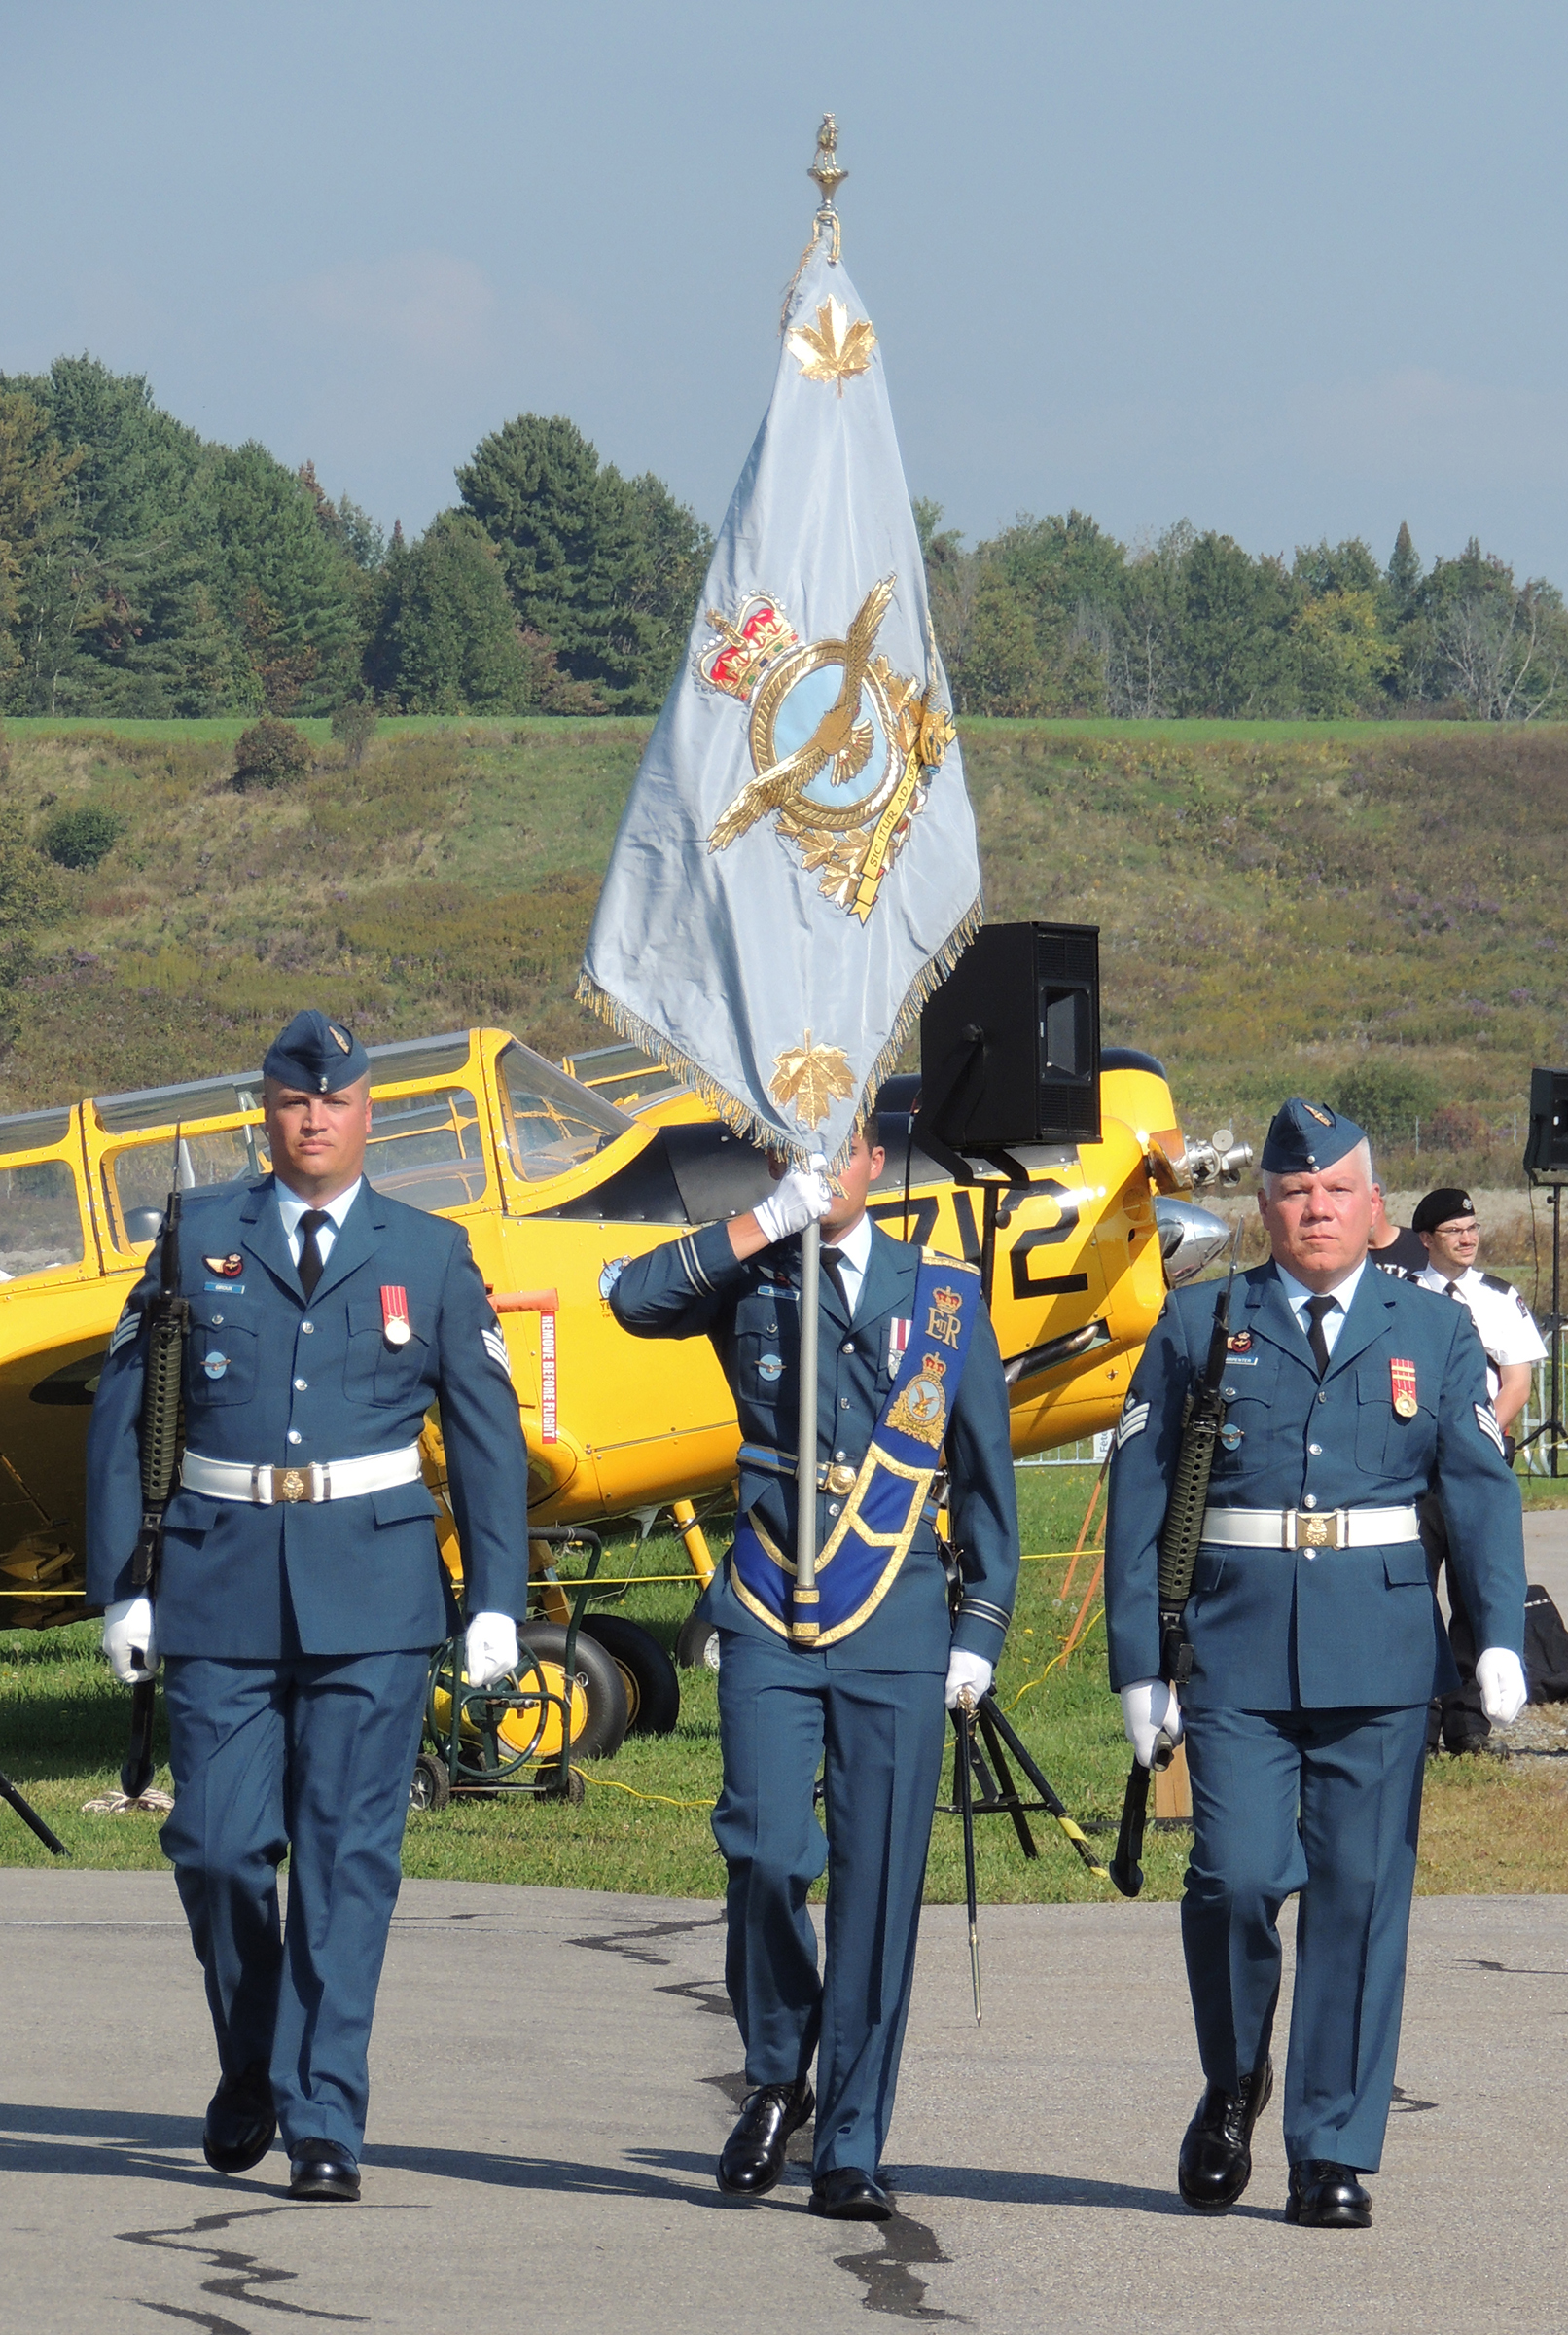 The national Battle of Britain parade, held September 17, 2017, was the first time the new RCAF's new Command Colour was paraded since it was presented by Governor General and Commander-in-Chief of Canada David Johnston on September 1, 2017. PHOTO: Joanna Calder